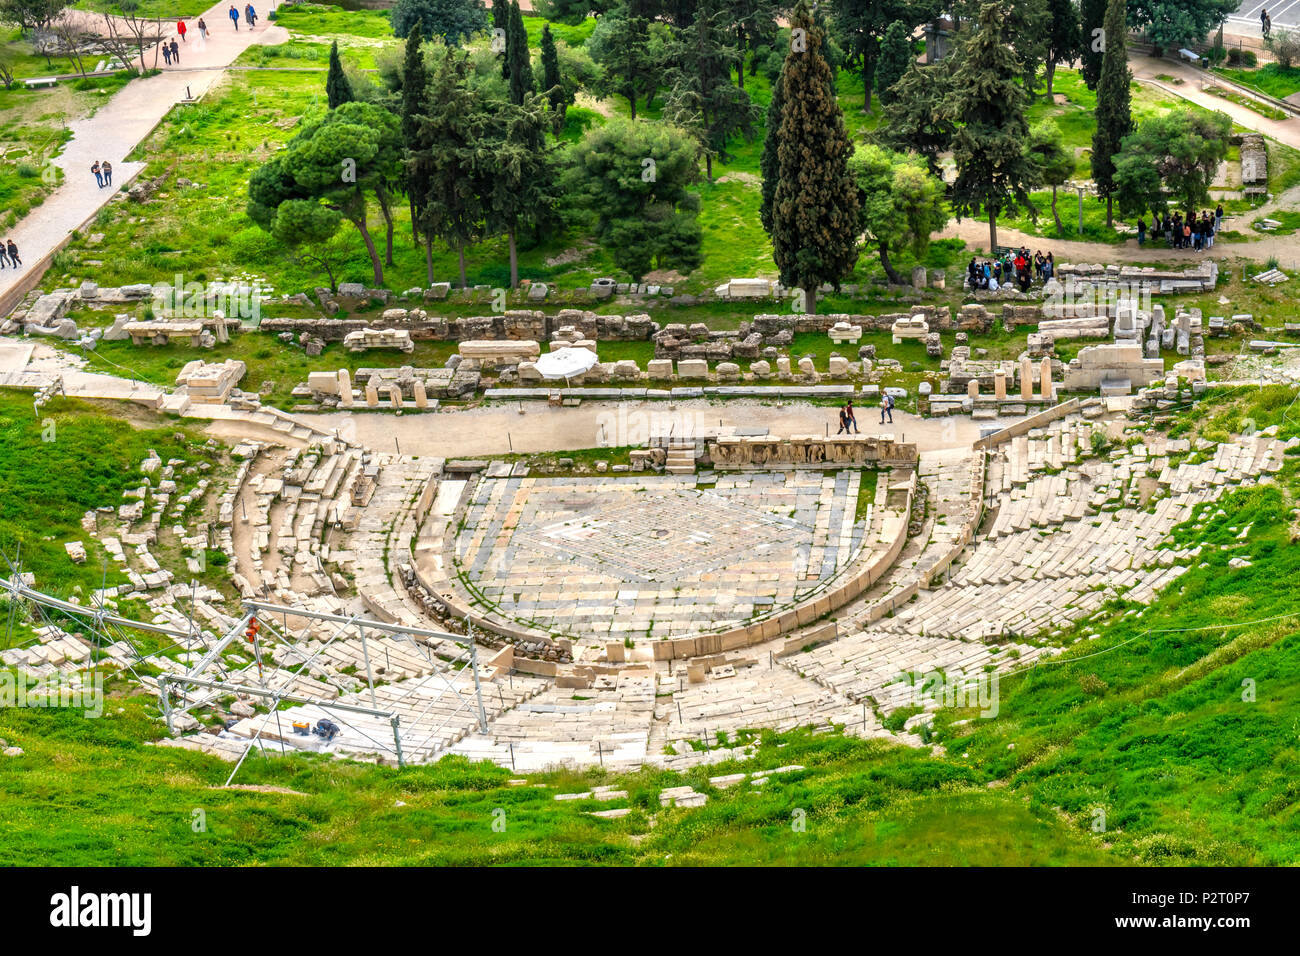 Theater of Dinoysus Acropolis Athens Greece. Oldest Theater in the World, founded in early 500s BC. - Stock Image